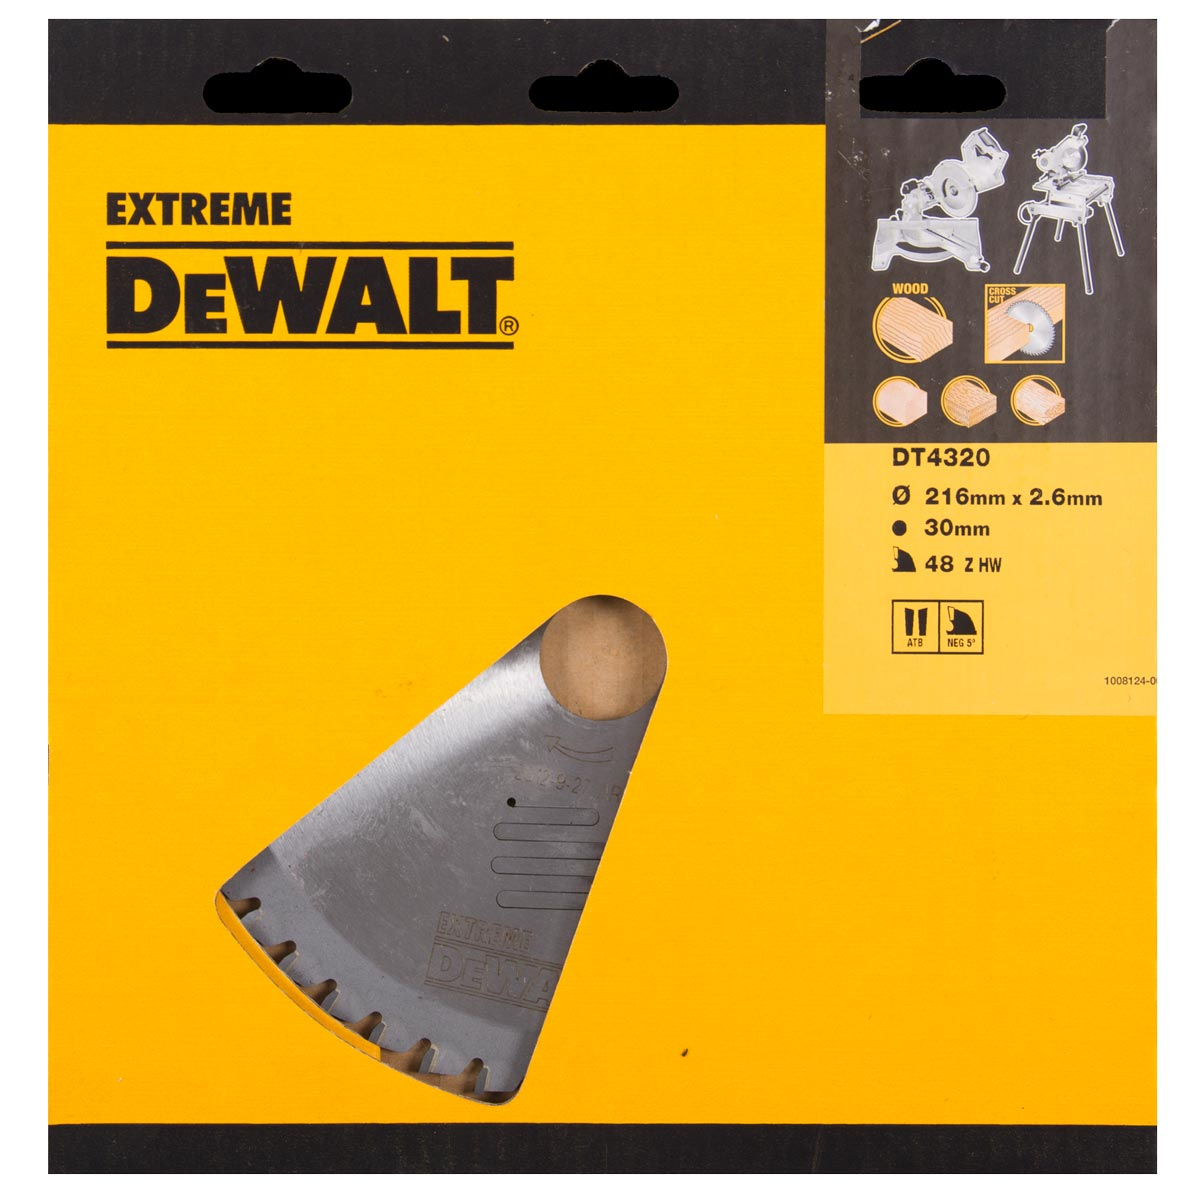 Sagblad for tre DeWalt DT4320 Ø216 mm